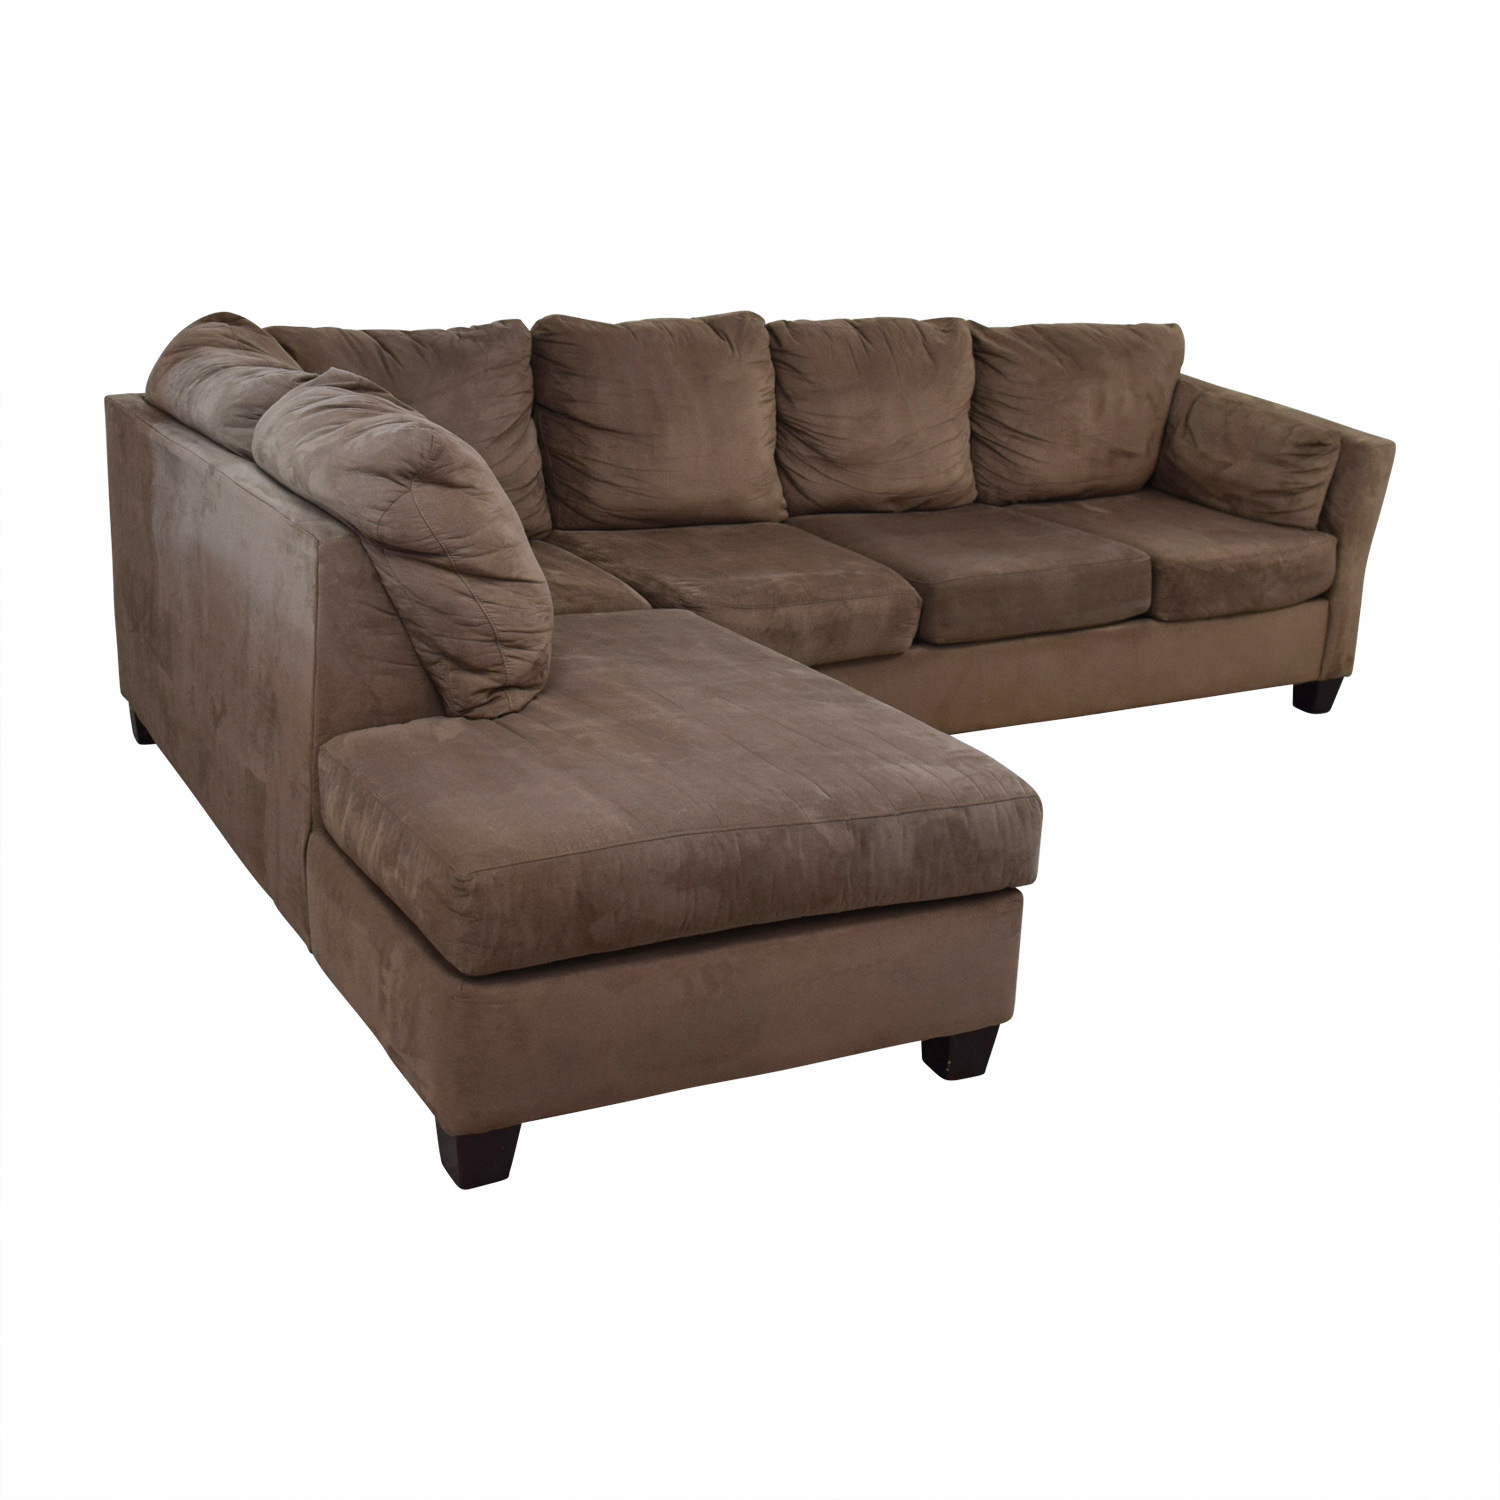 Bobs Furniture Sectionals 28 Images Sectional Sofas Bobs Alpha 6 Piece Sectional Bob S Bobs